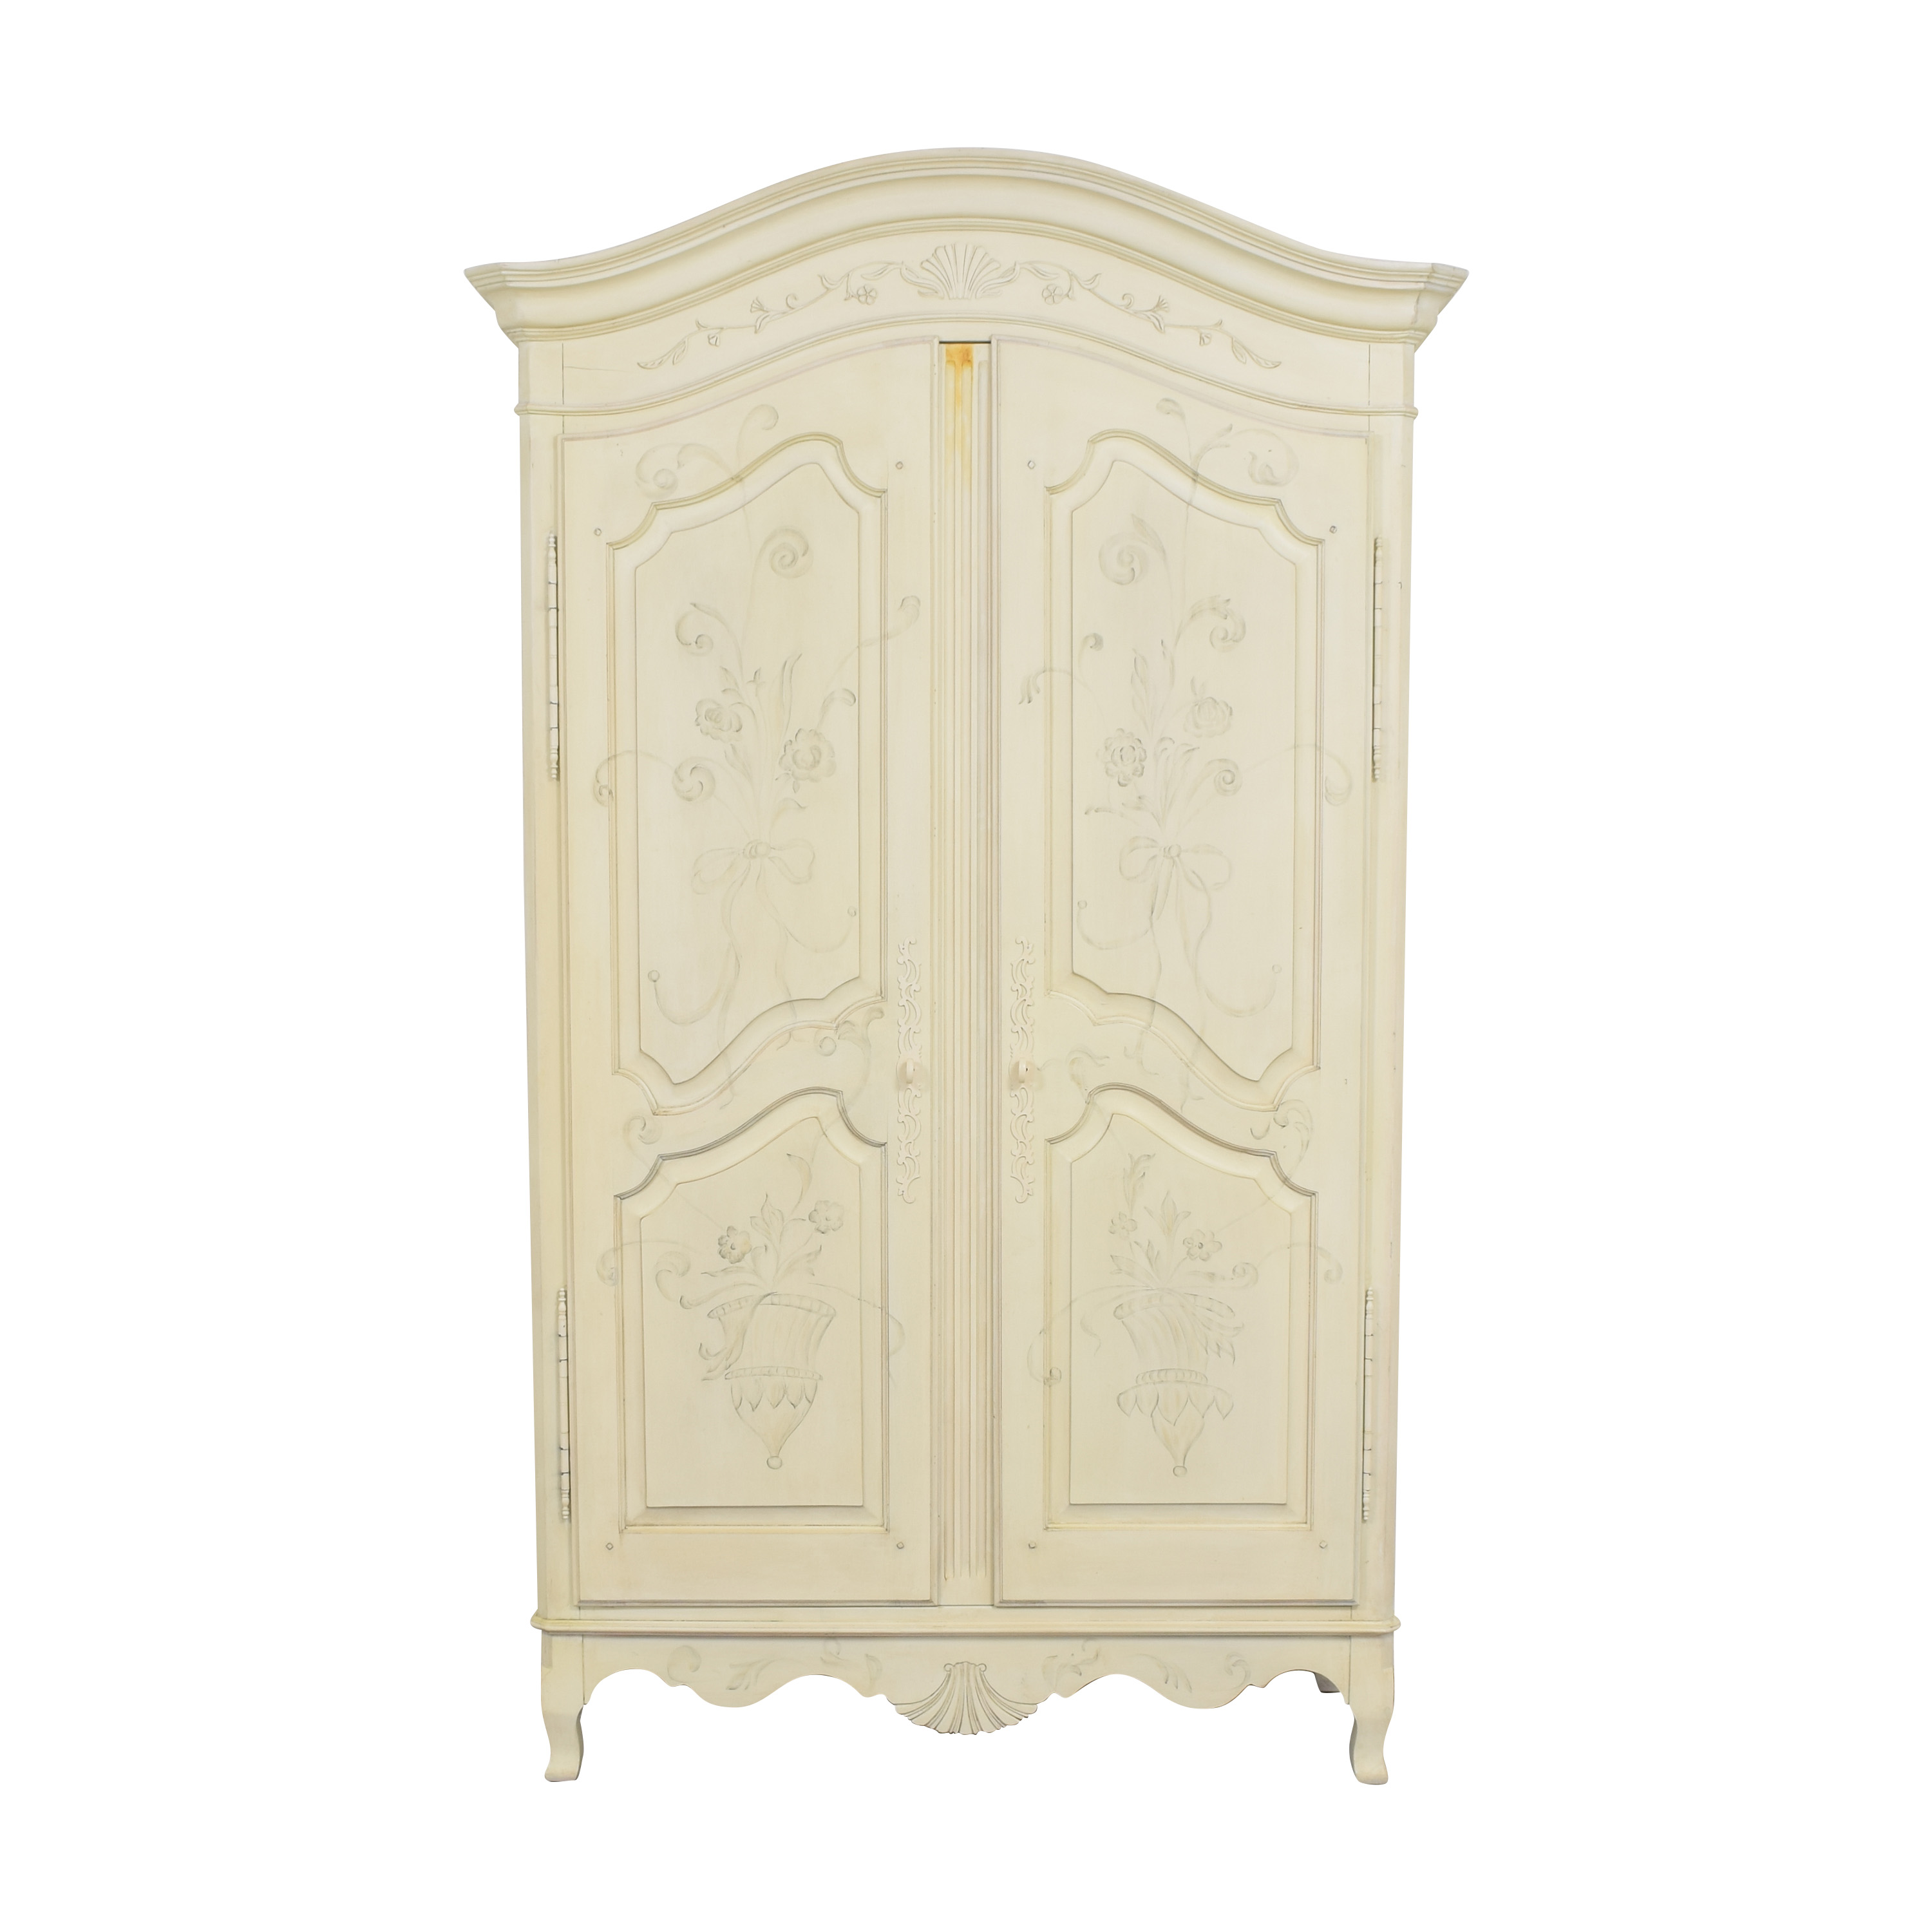 66 off ethan allen ethan allen decorated country french armoire storage